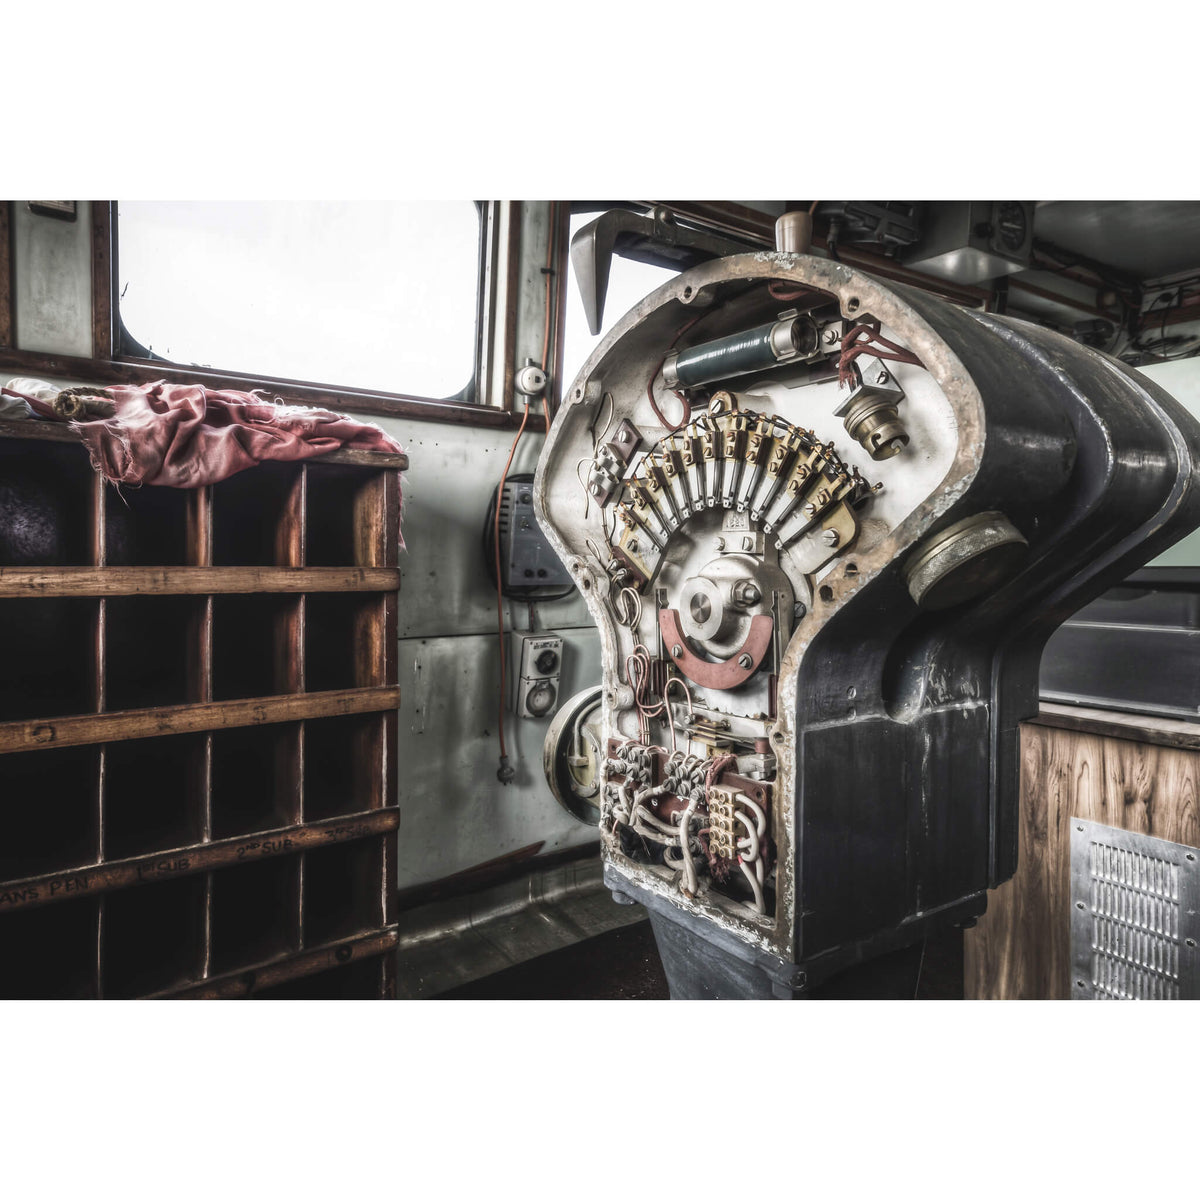 Engine Order Telegraph | MV Cape Don Fine Art Print - Lost Collective Shop